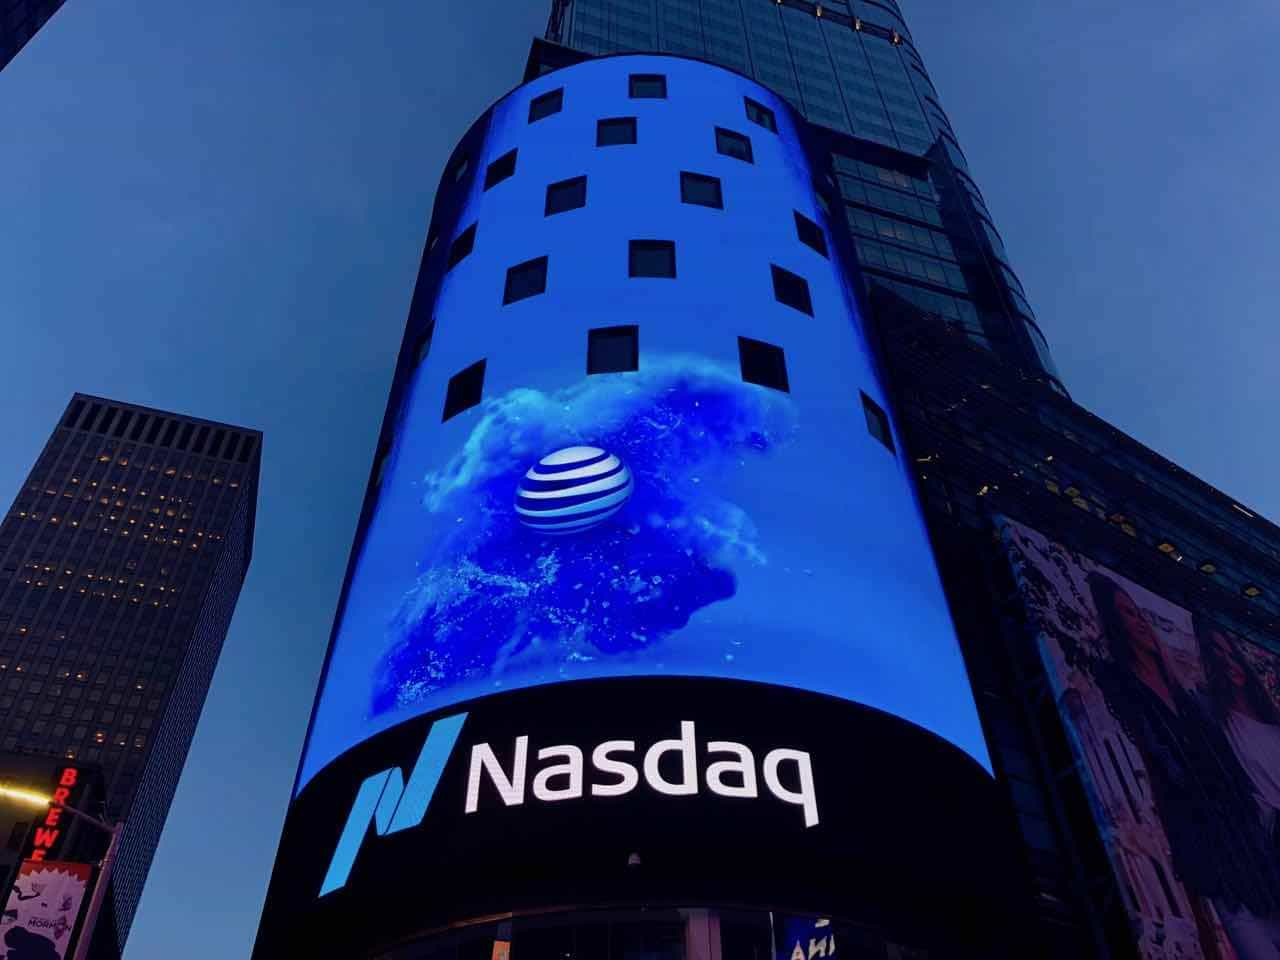 Nasdaq to Offer Cryptocurrency Pricing Product in Partnership with CryptoCompare